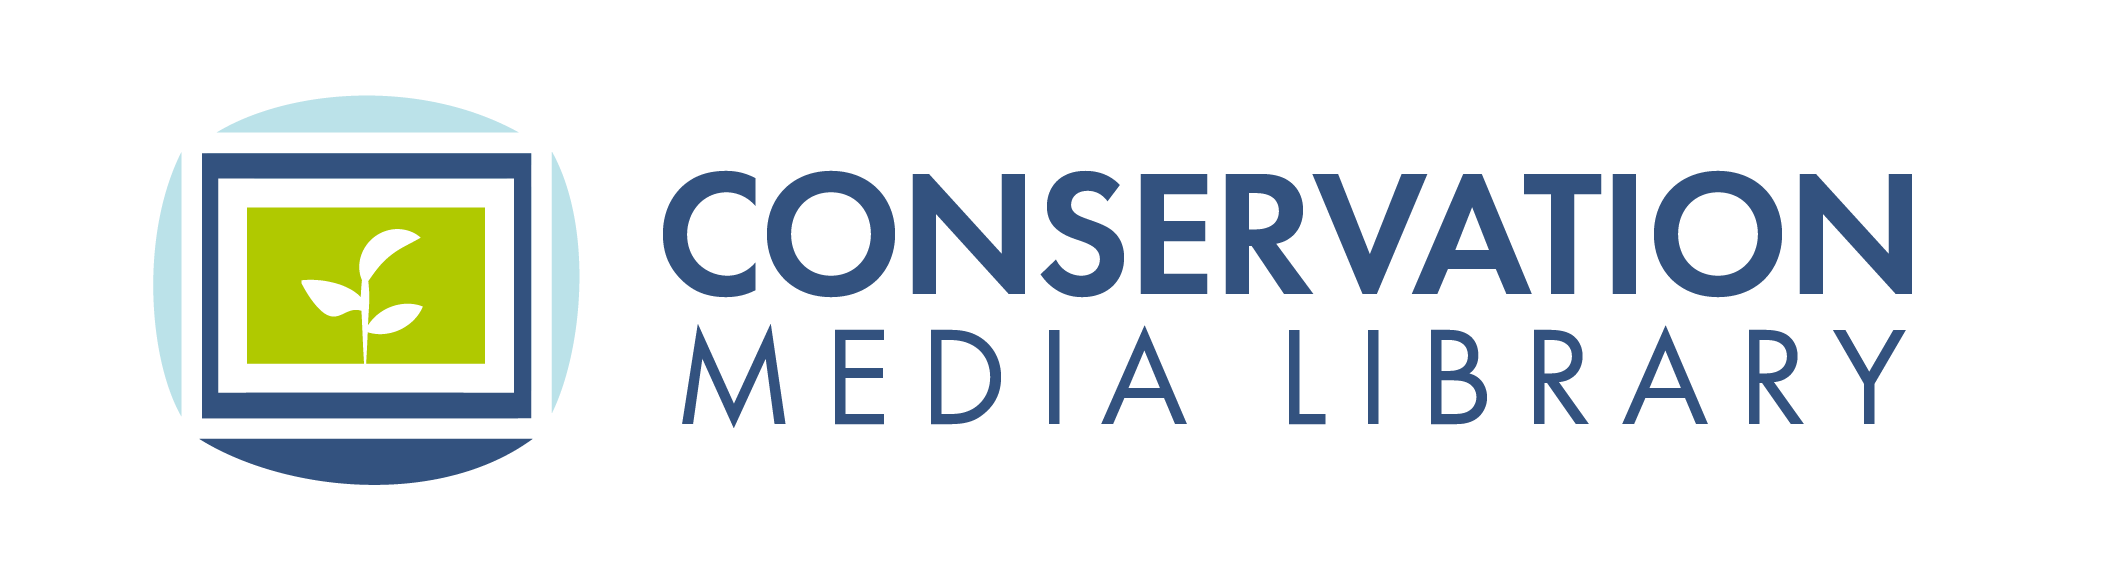 Conservation Media Library logo